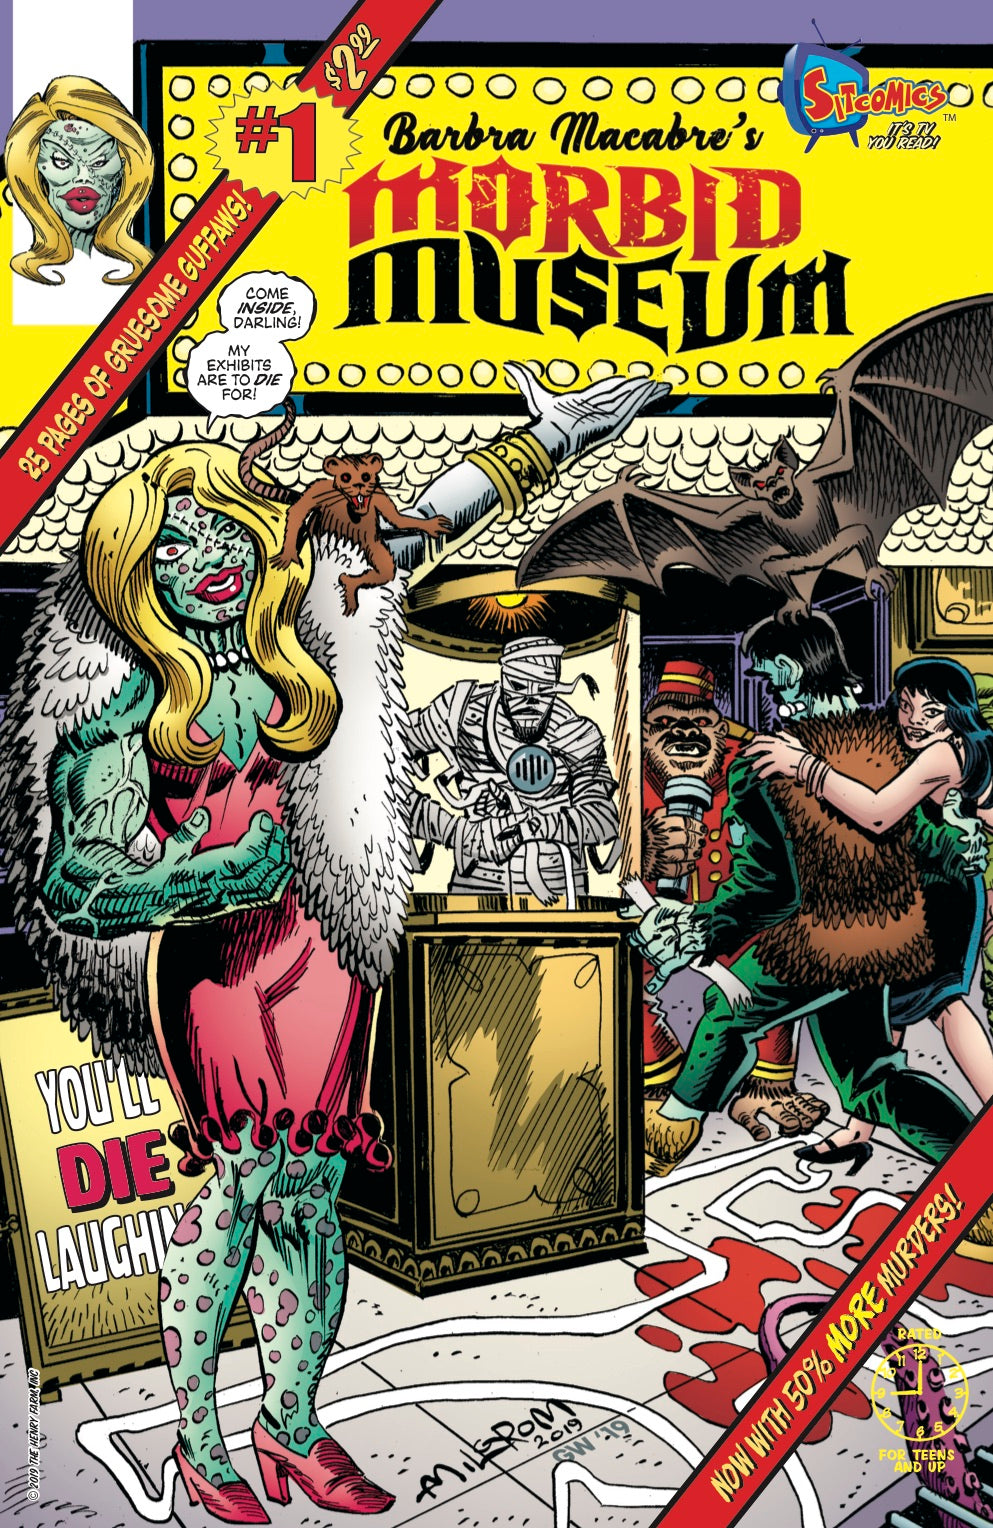 Morbid Museum #1.1 (Digital Download)